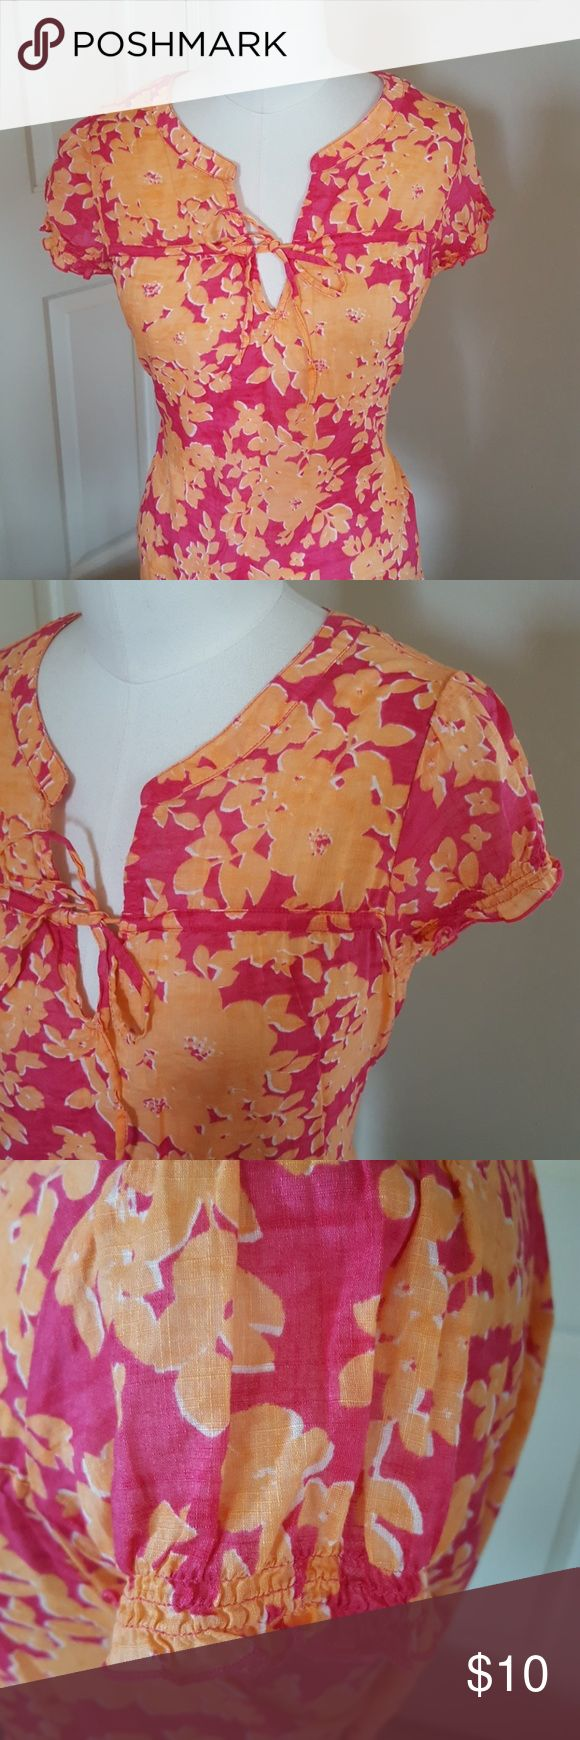 Bright floral smock top Hot pink with sunny orange floral patterned top. Short sleeve with elastic detaining at cuff/hem. Split v-neck with tie. Small gathered detail in back at nape of neck. Super light, gauzy cotton. Old Navy Tops